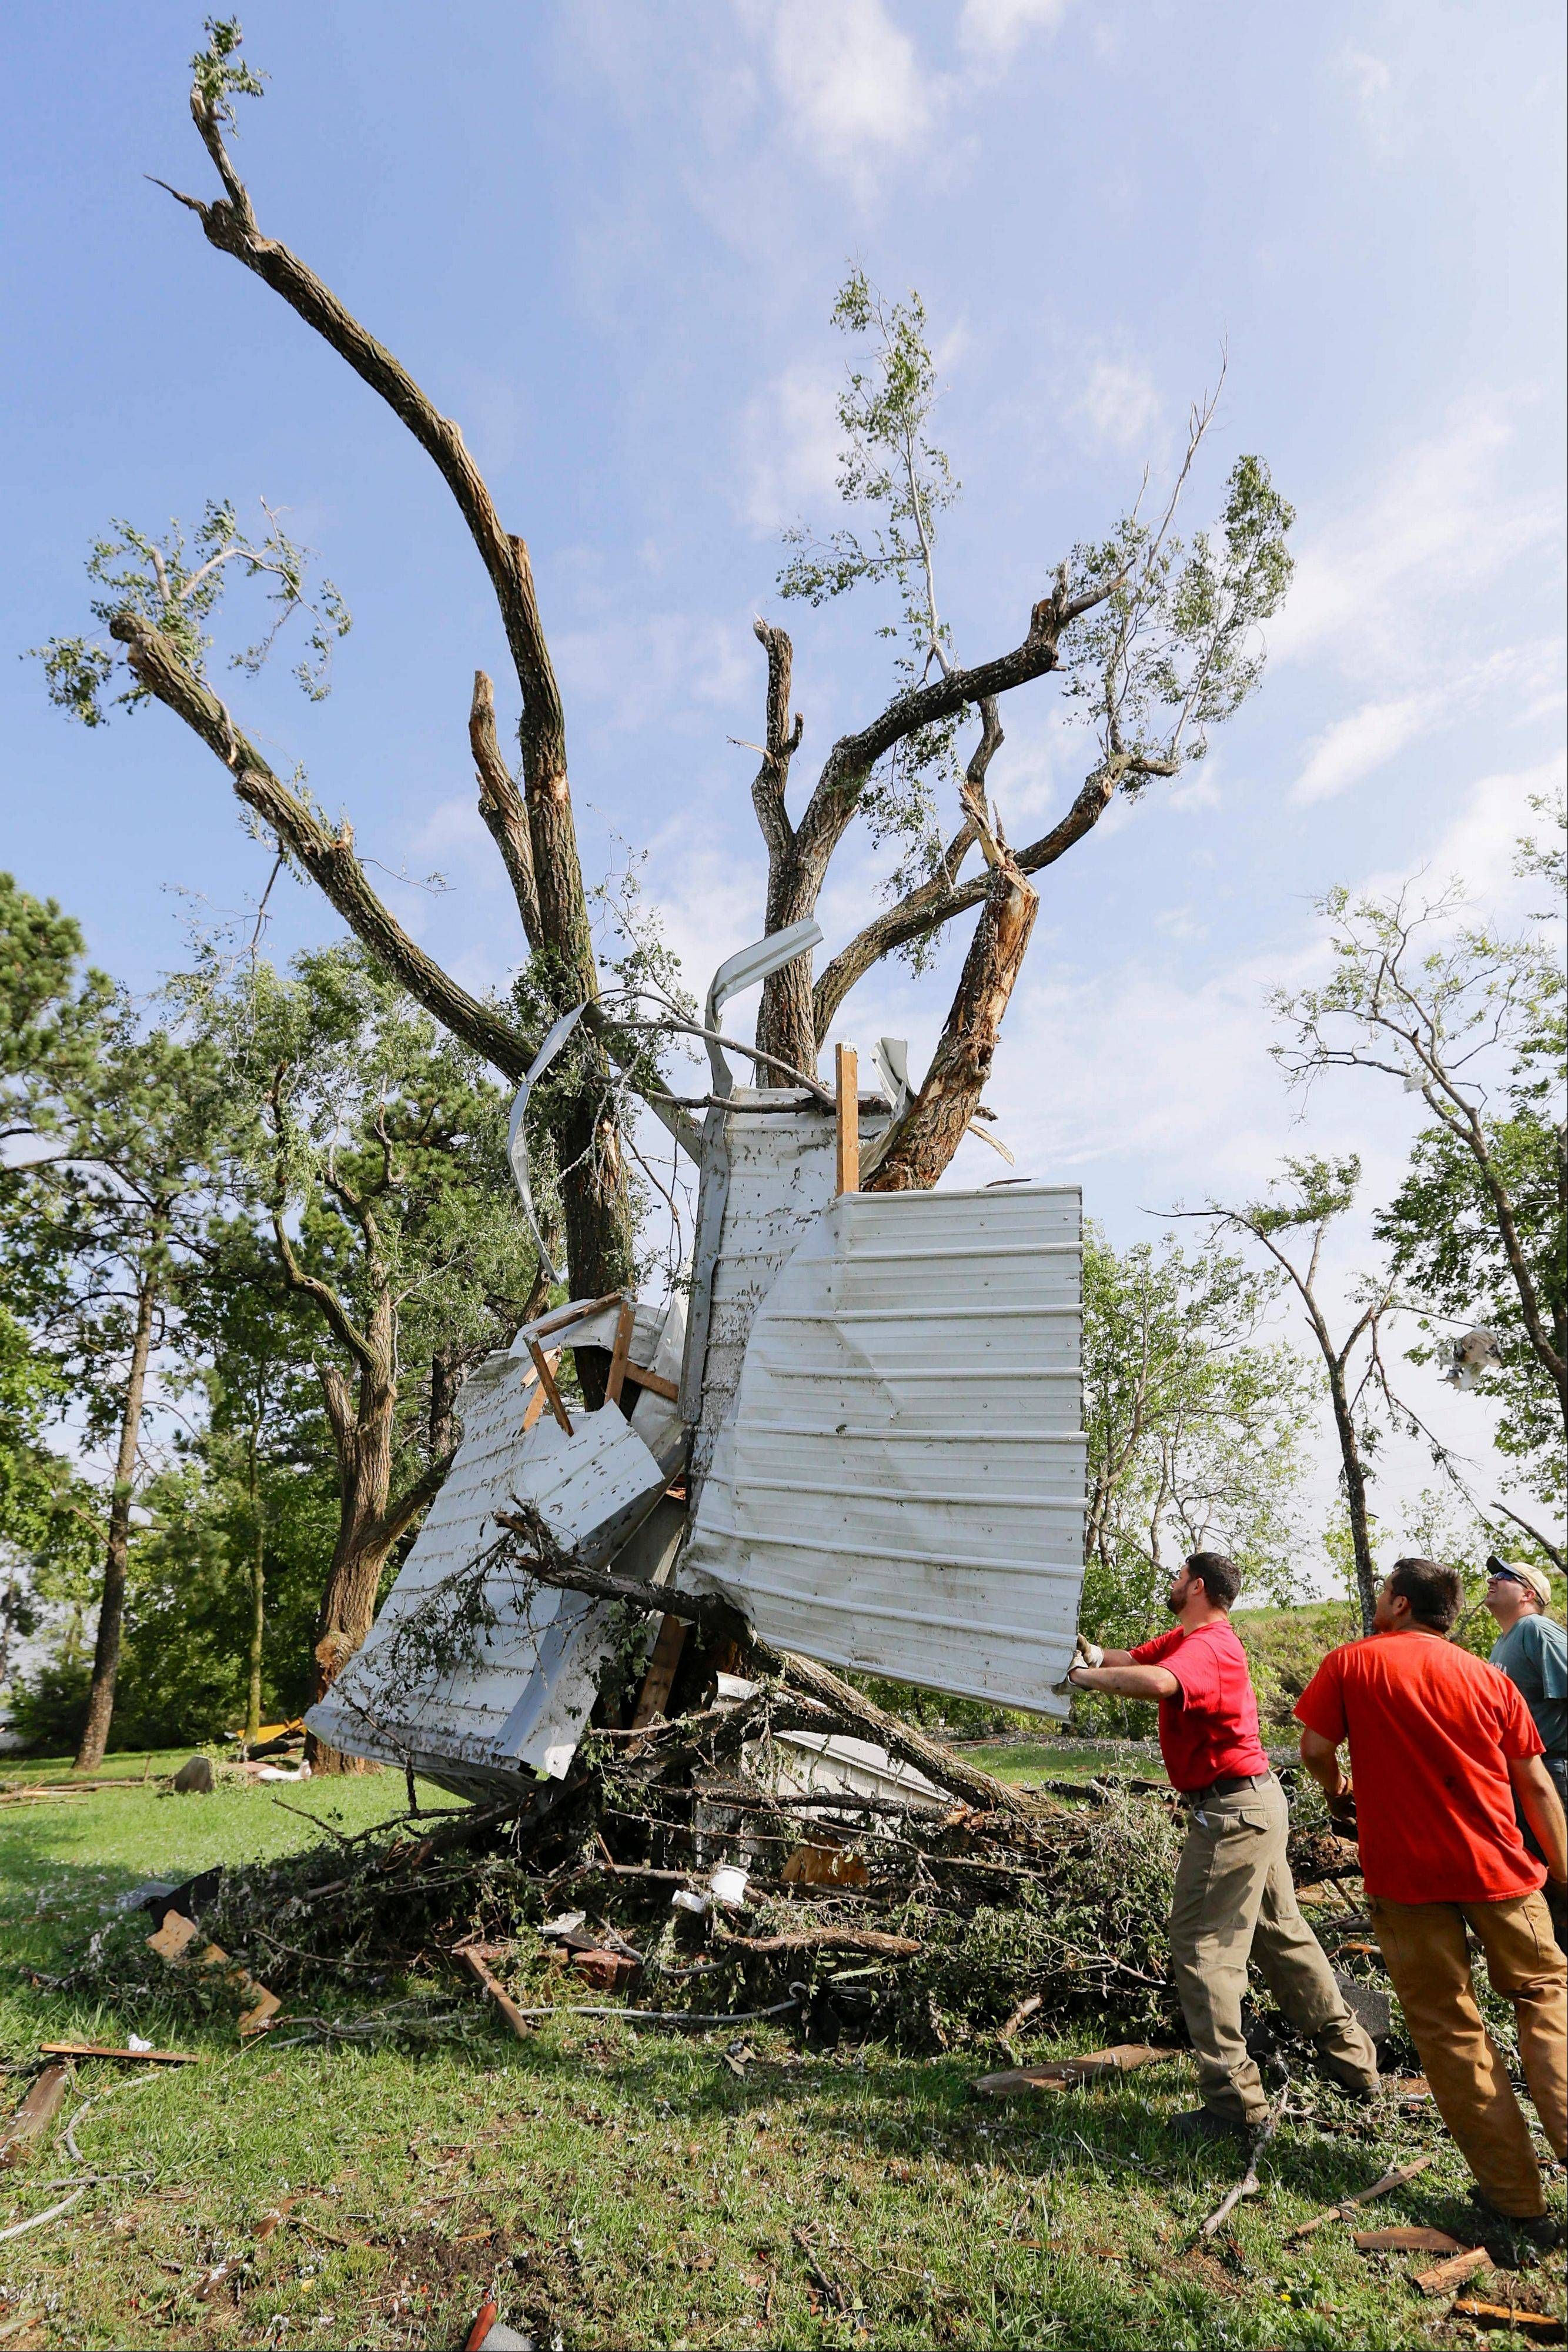 Residents try to free a house panel from where it was lodged against a tree following a tornado in Bennet, Neb., Friday, Oct. 4, 2013. Powerful storms crawled into the Midwest on Friday, dumping heavy snow in South Dakota, spawning a tornado in Nebraska and threatening dangerous thunderstorms from Oklahoma to Wisconsin.